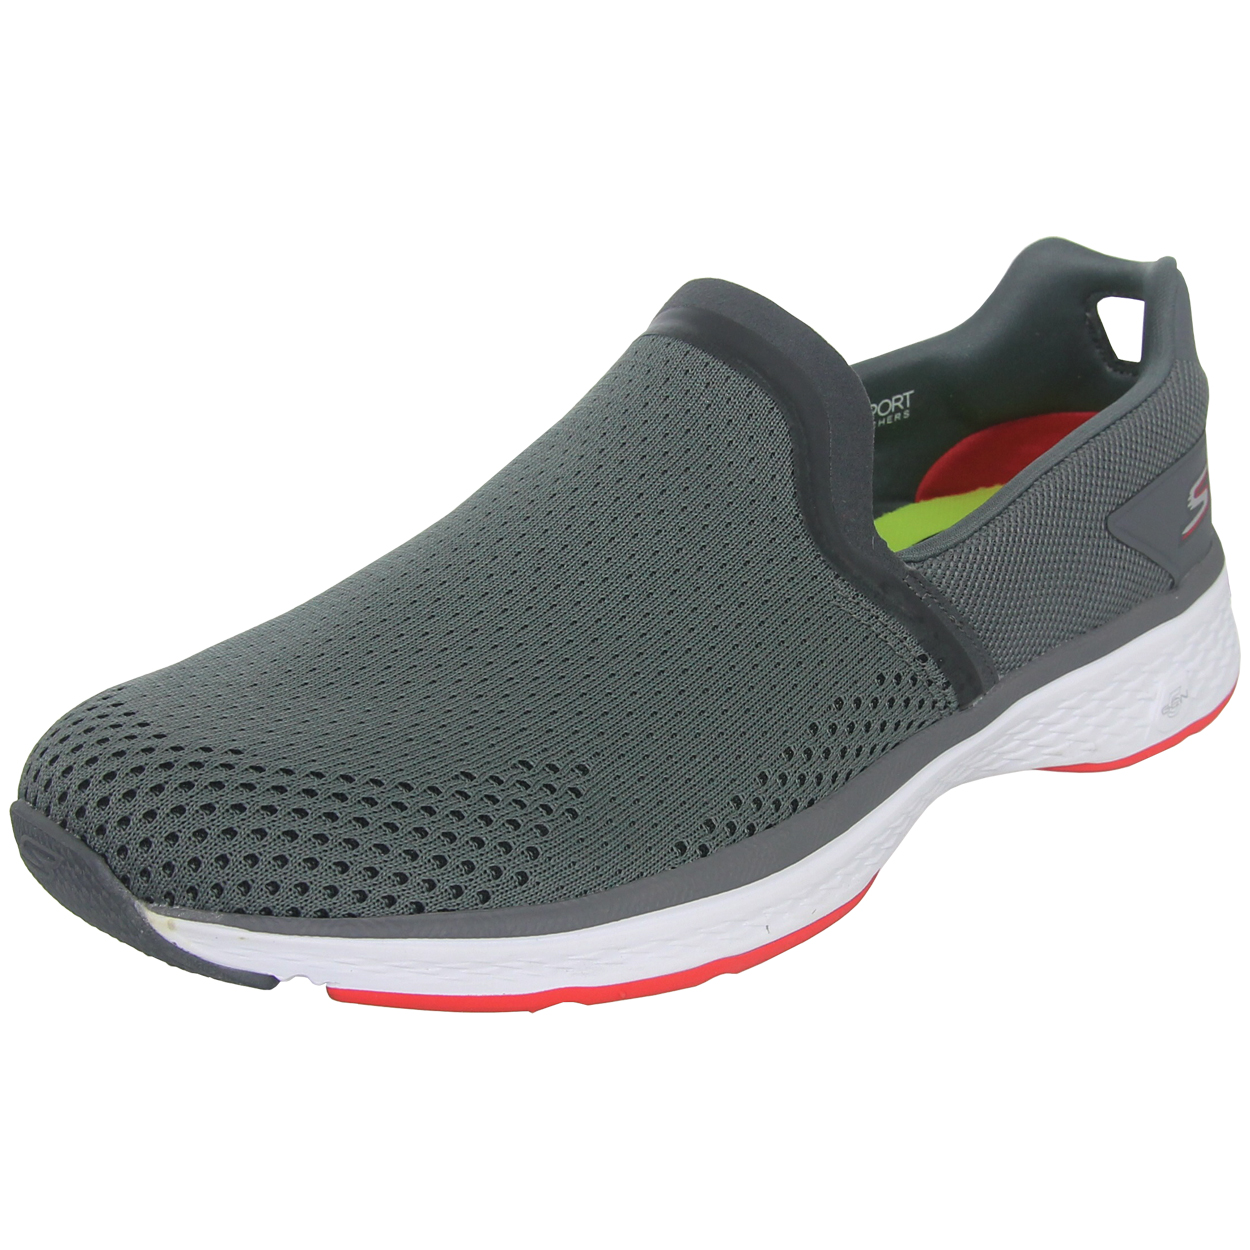 Skechers Golf Shoe Mens